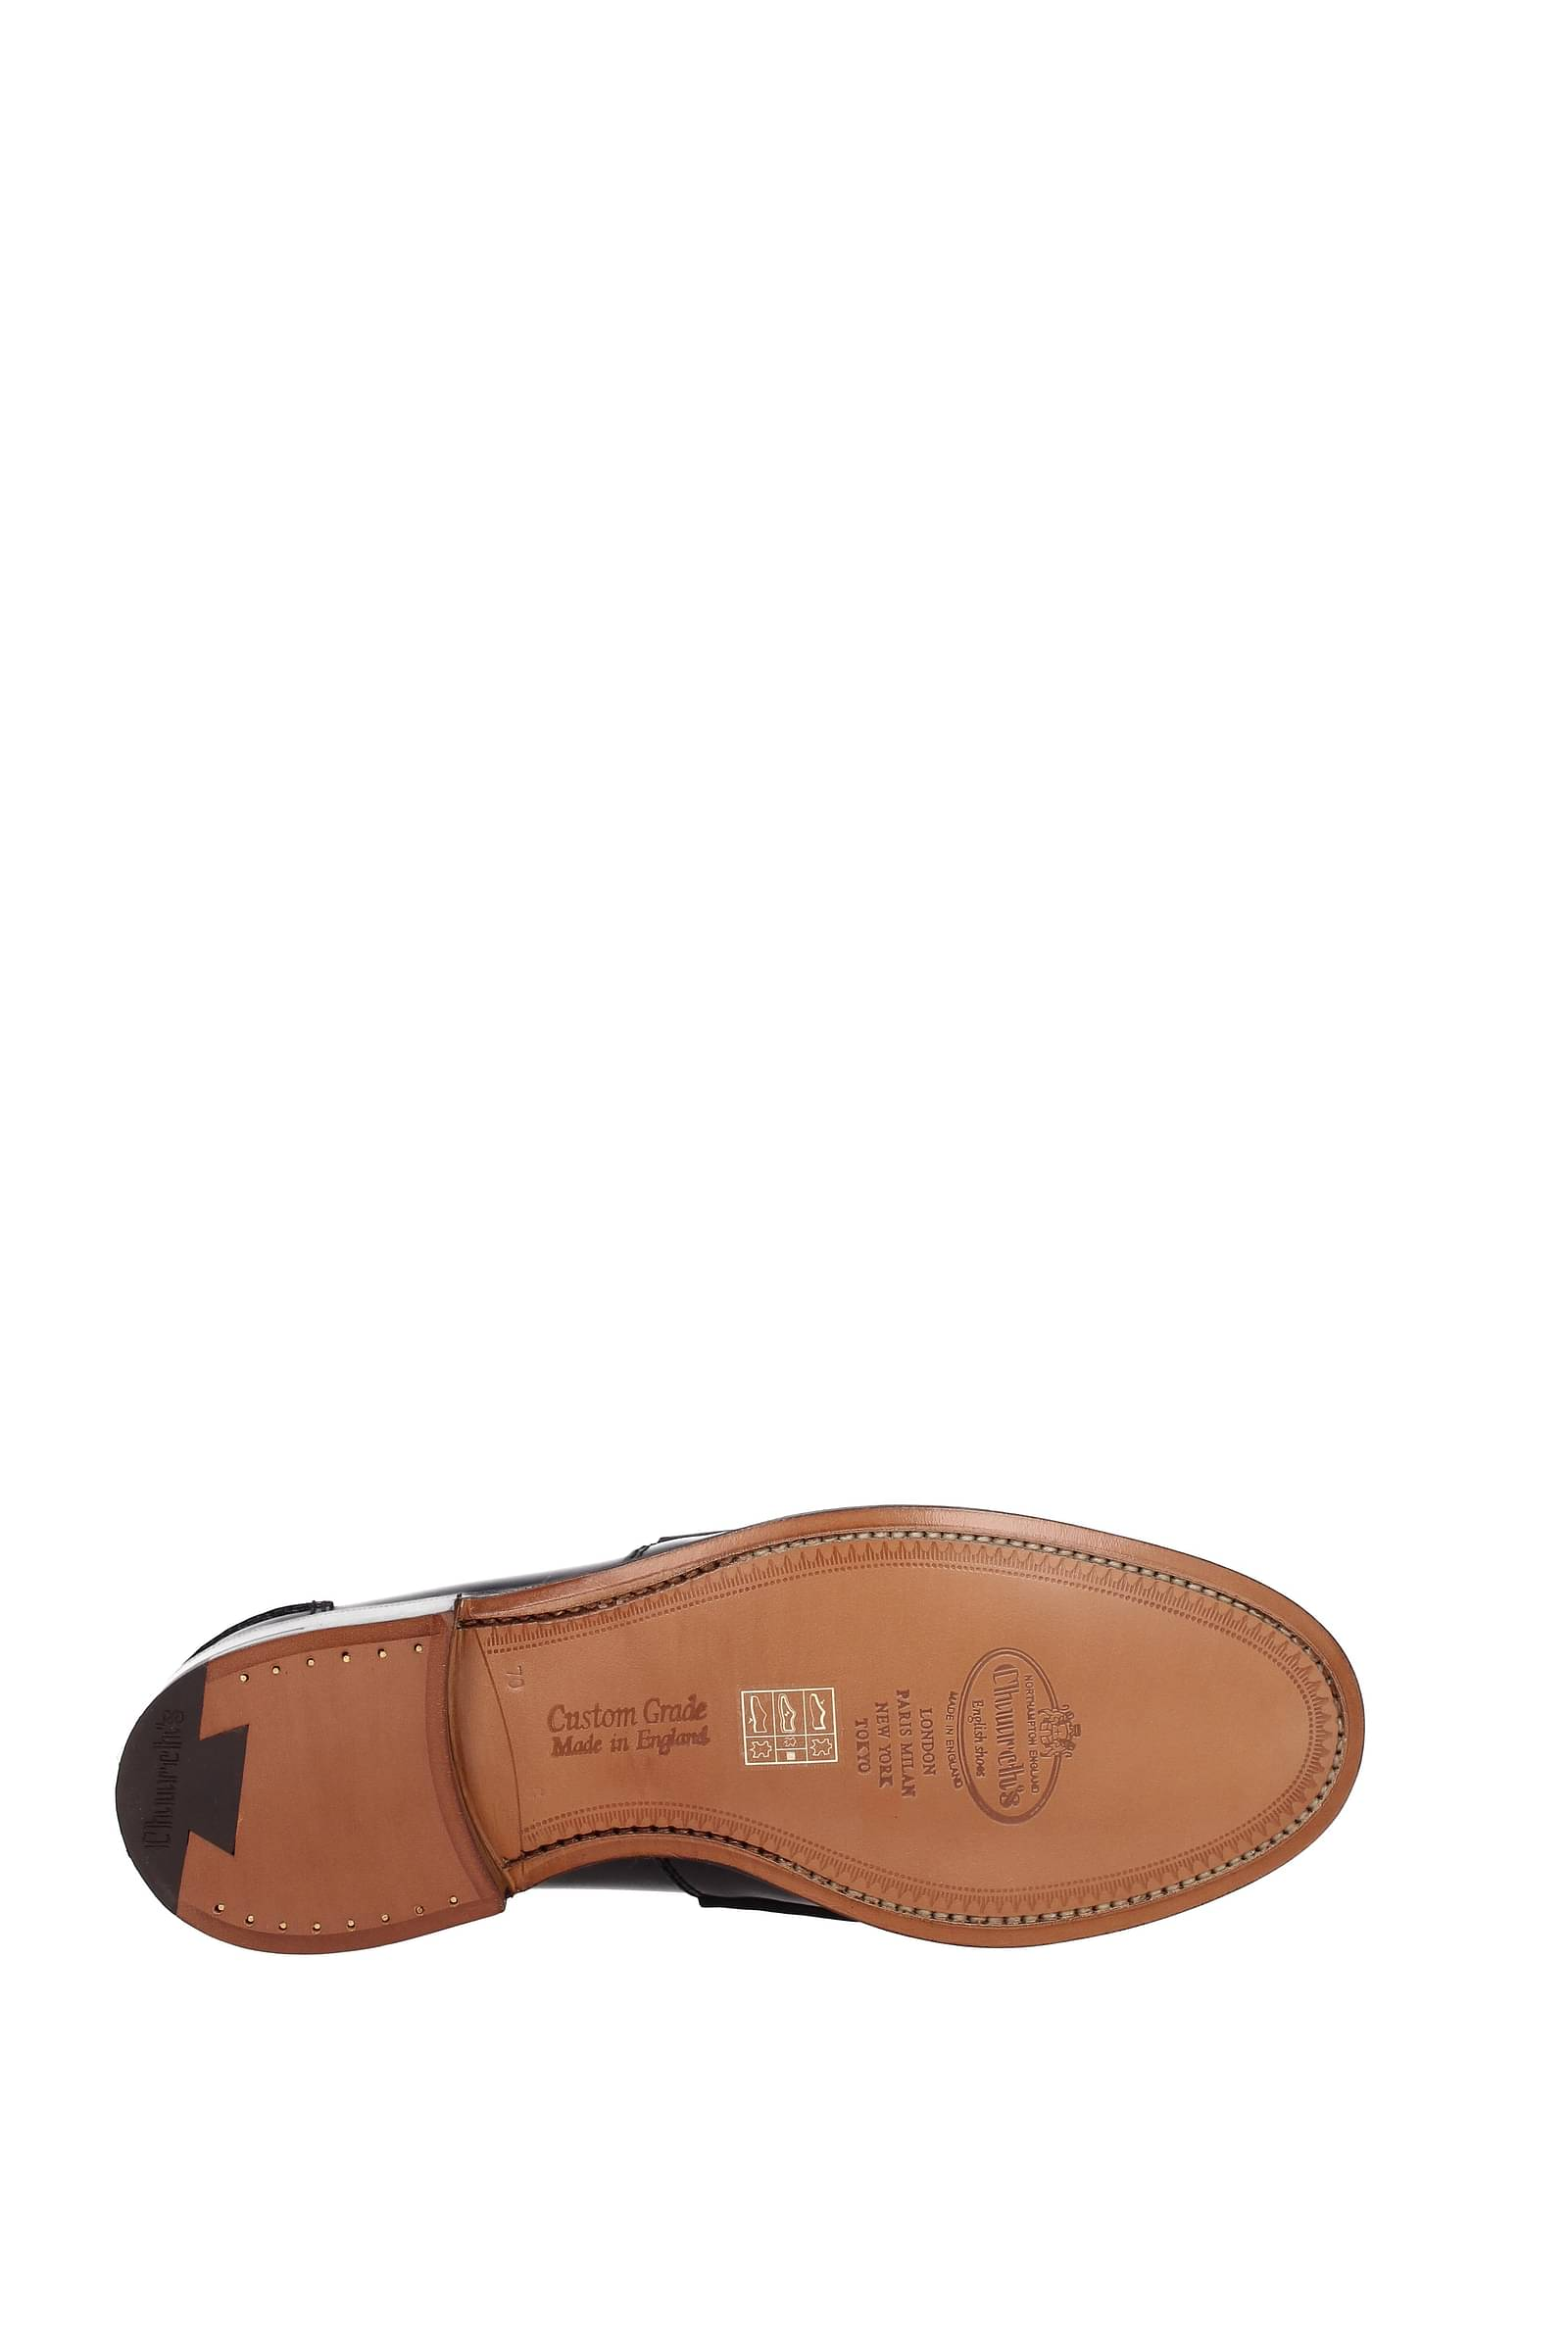 Loafers-Church-039-s-Man-Leather-TUNBRIDGE thumbnail 5